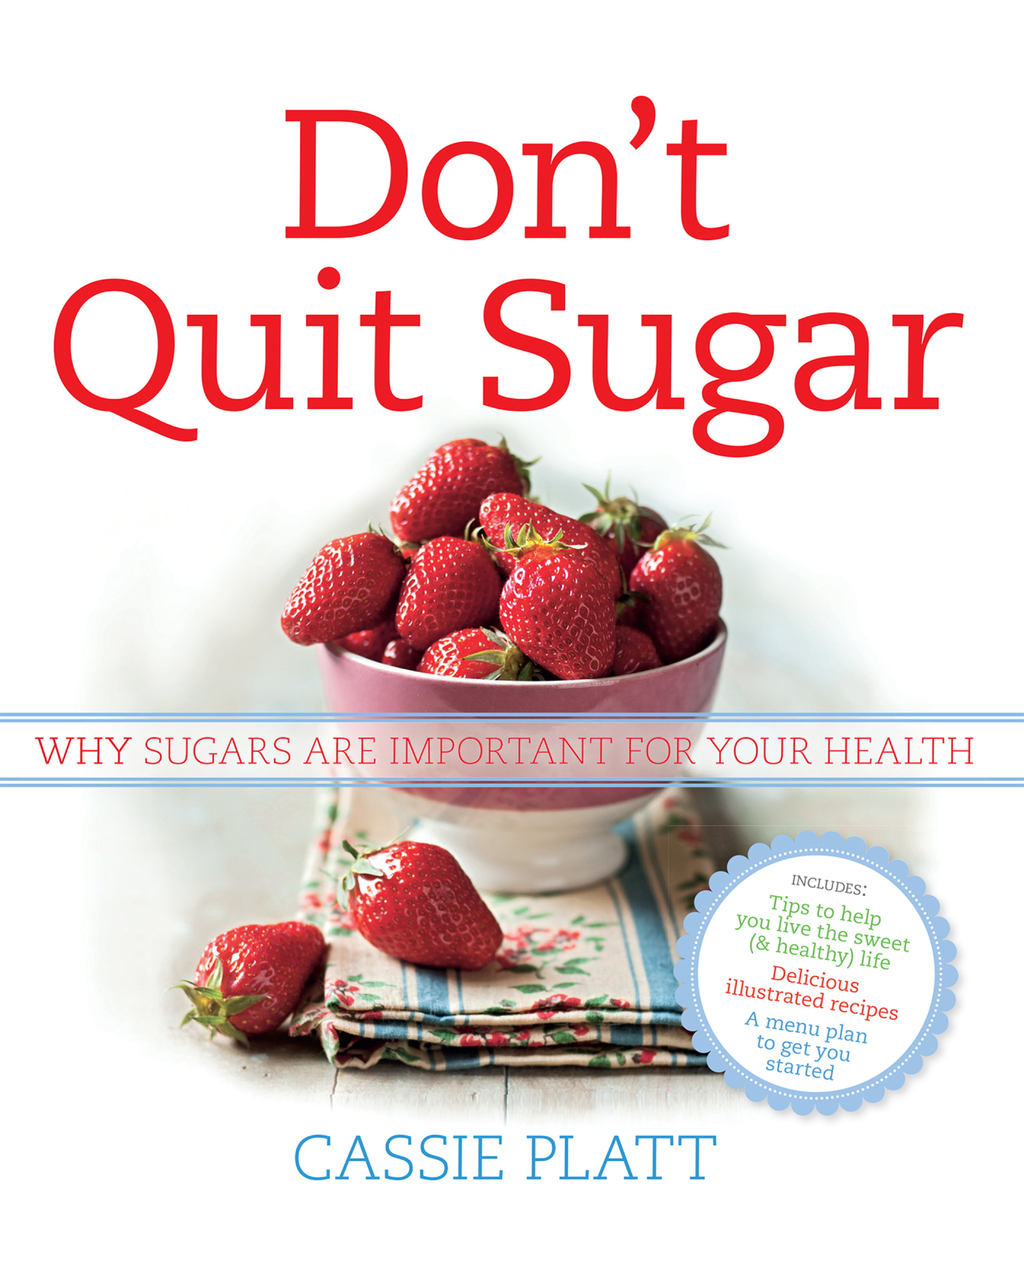 Don't Quit Sugar Why sugars are important for your health